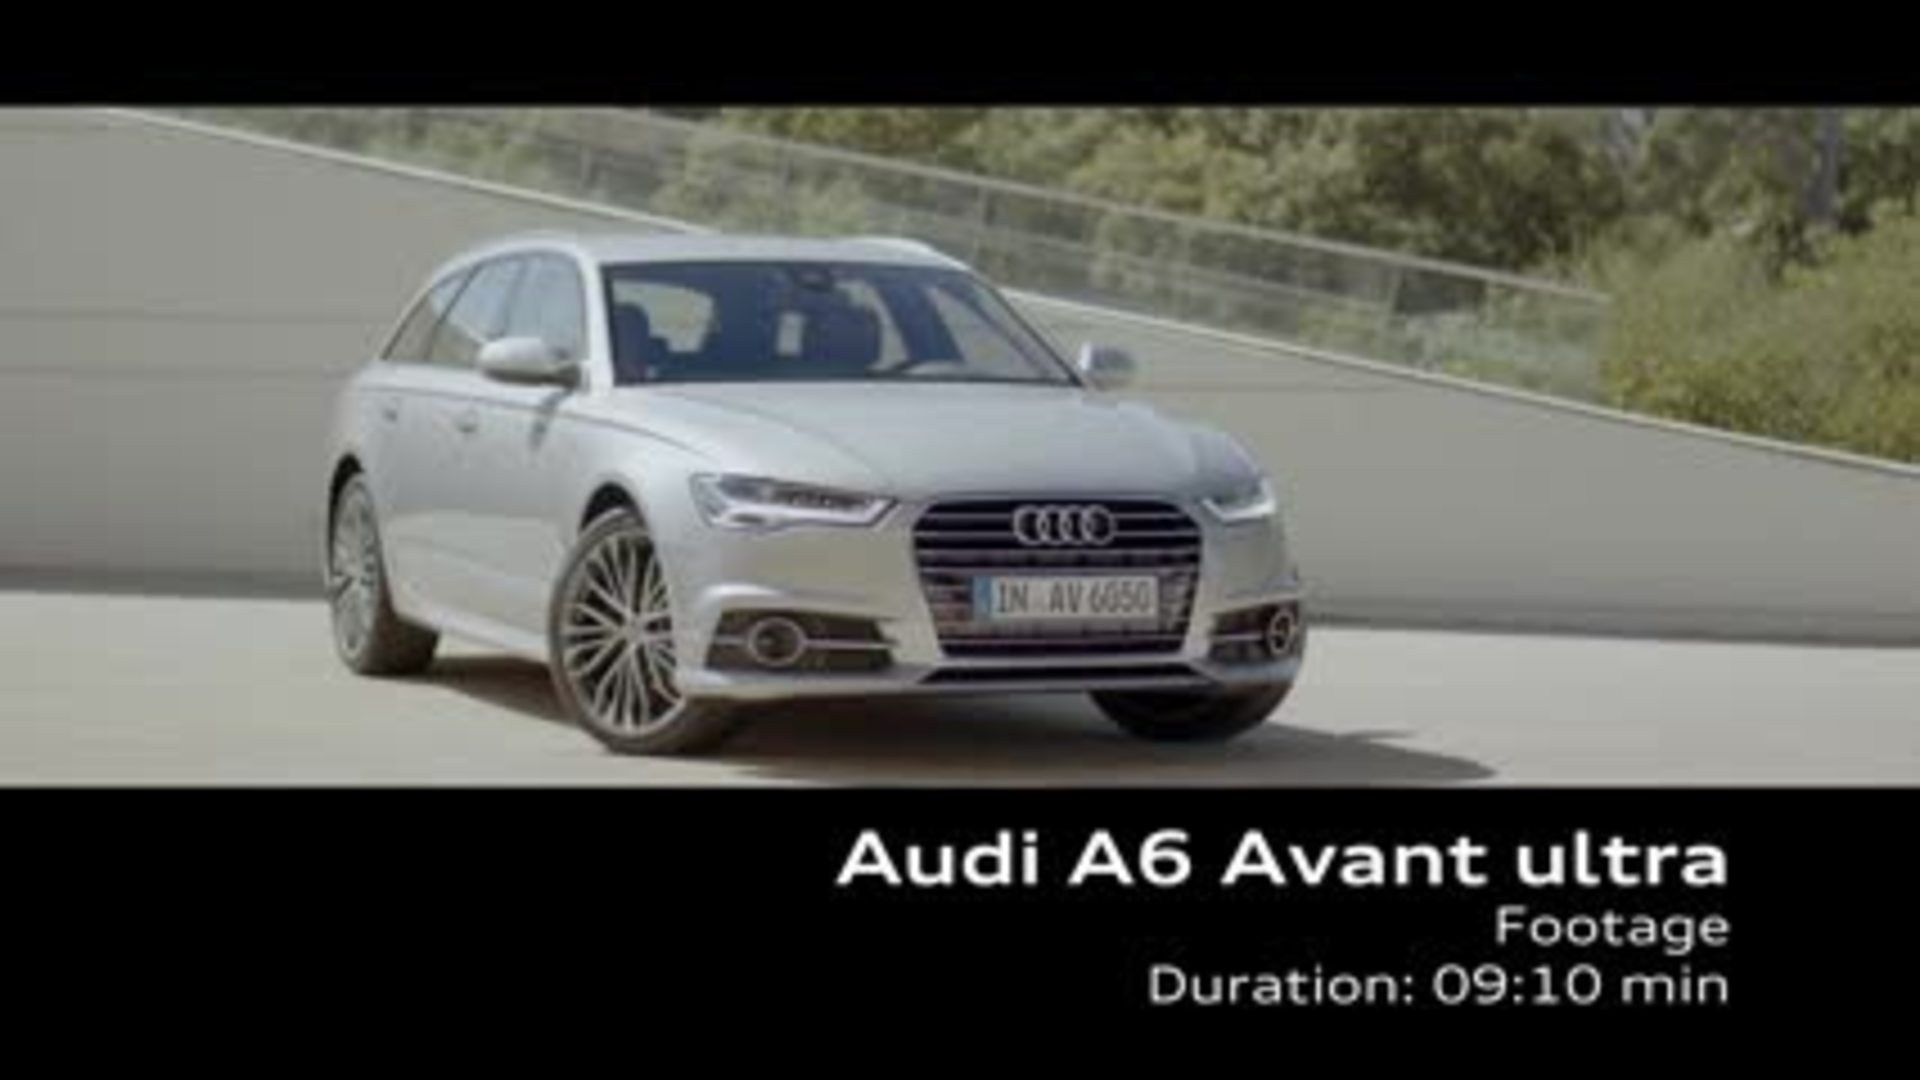 The Audi A6 Avant ultra - Footage